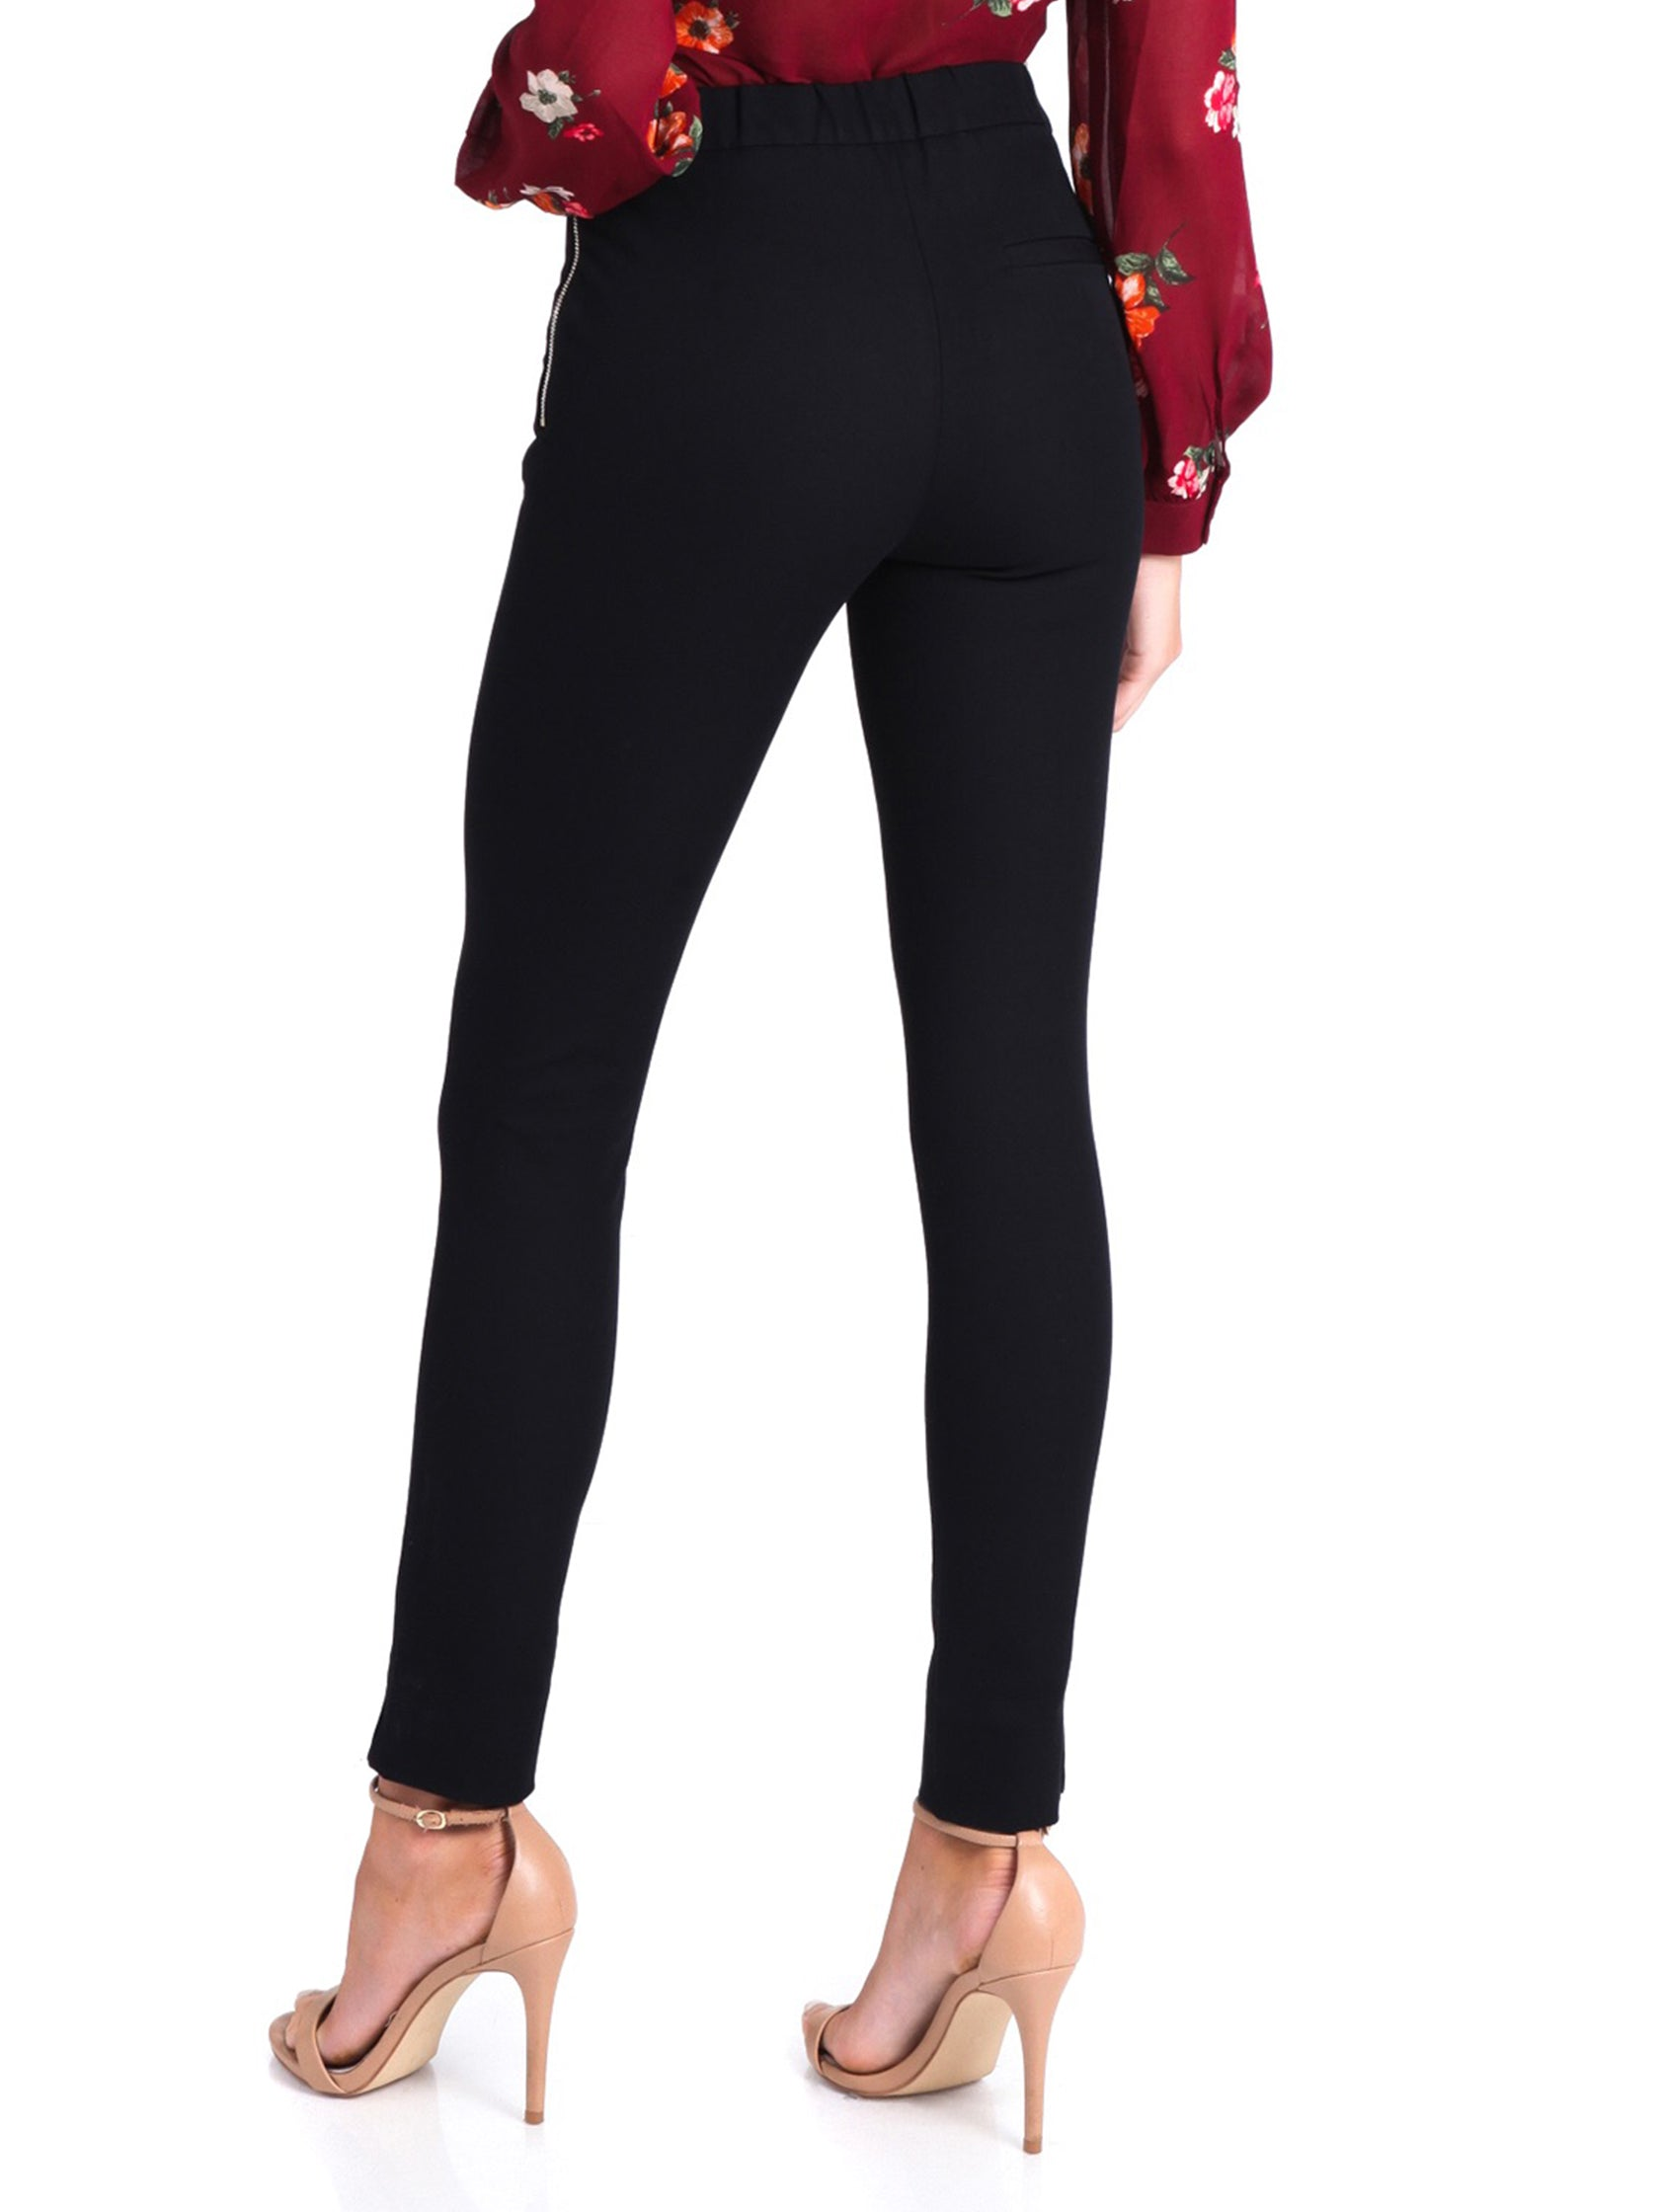 Women outfit in a pants rental from French Connection called Kara Twill Skinny Trousers